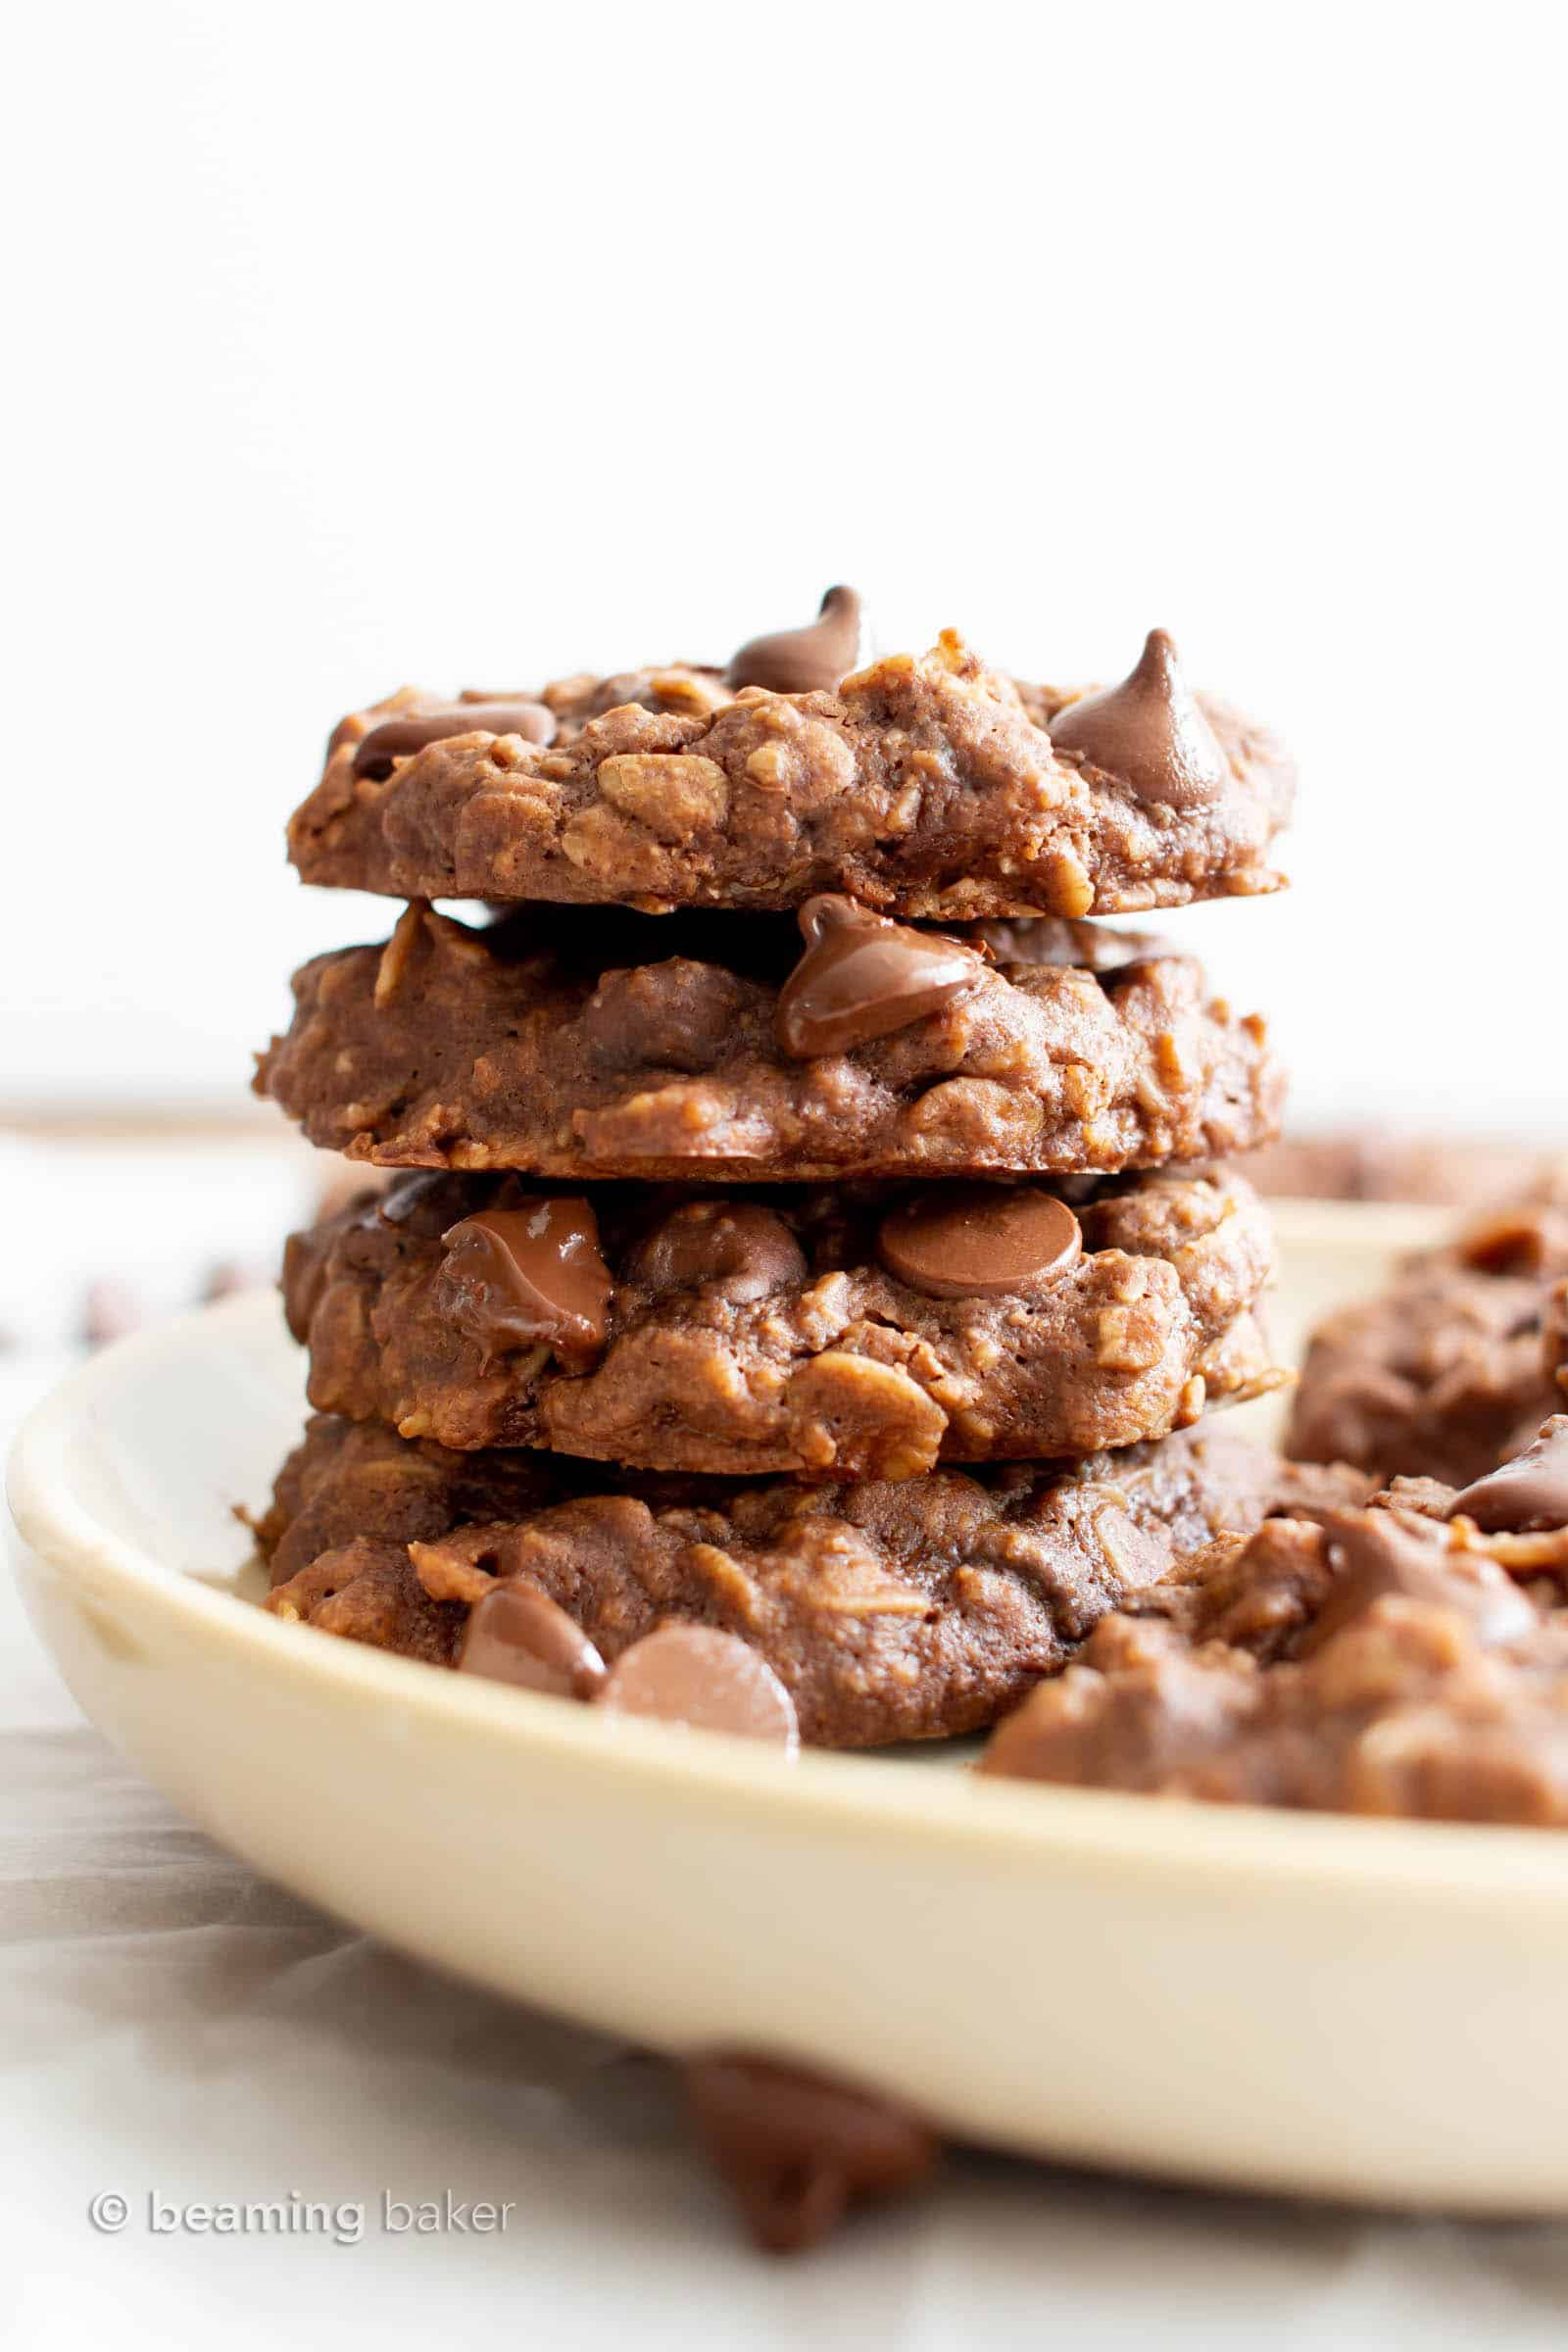 Healthy Chocolate Oatmeal Cookies: the best healthy chocolate oatmeal cookies—chewy & delicious, packed with chocolate chips & made with healthy ingredients. #Healthy #Oatmeal #Cookies #Chocolate   Recipe at BeamingBaker.com